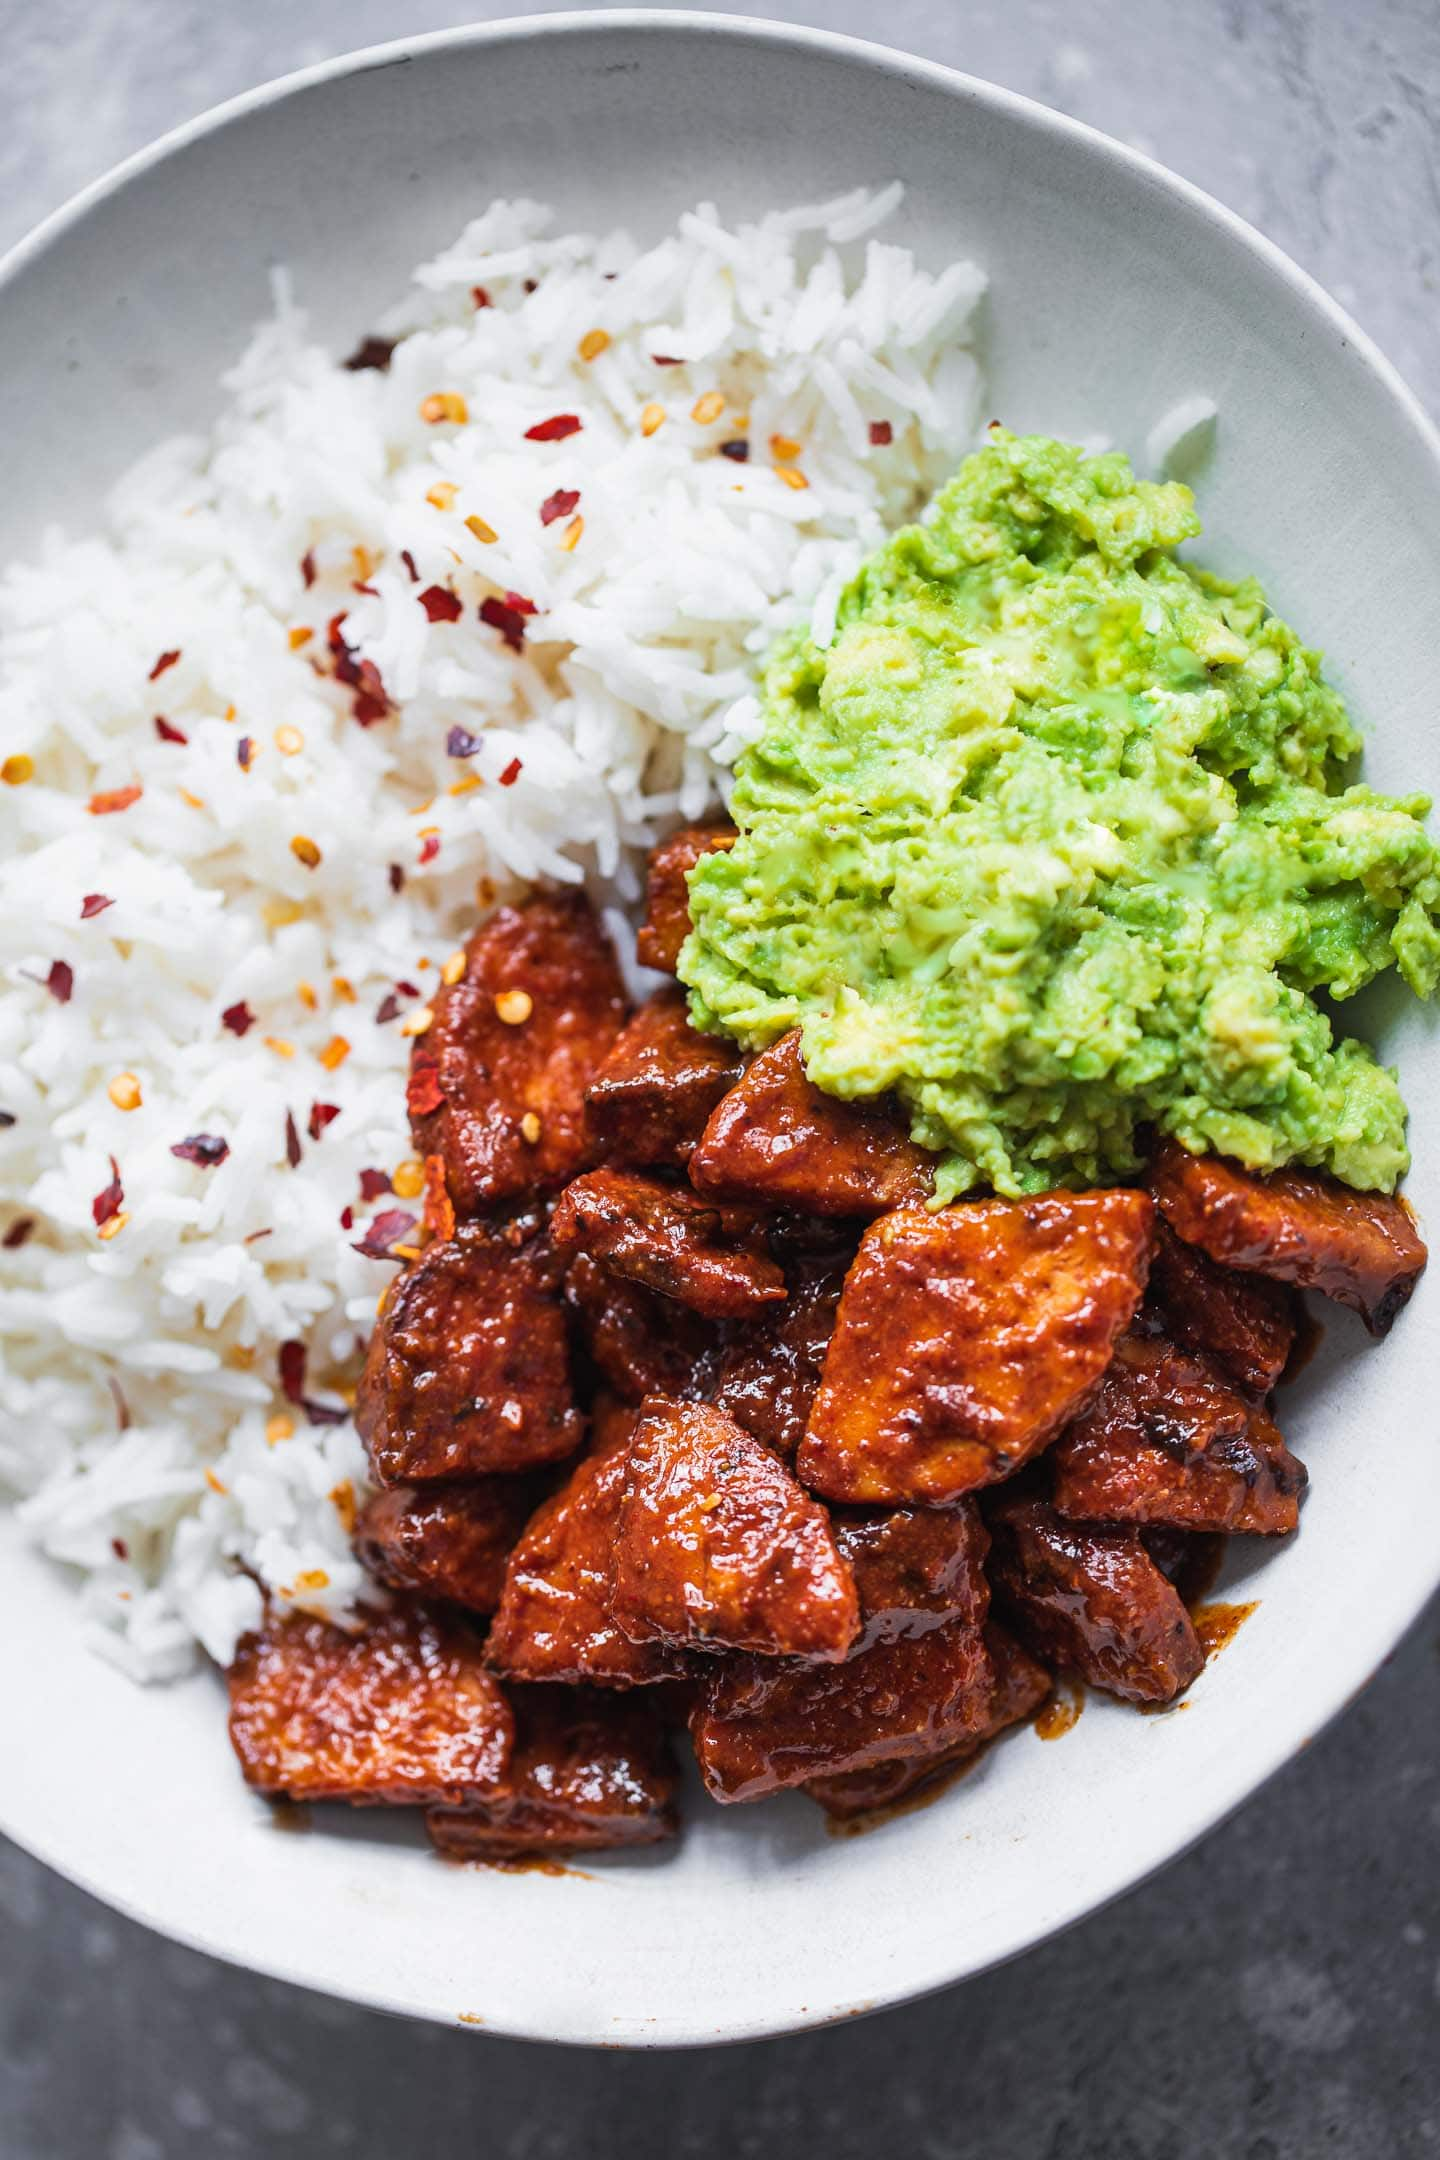 Bowl with tempeh, rice and avocado